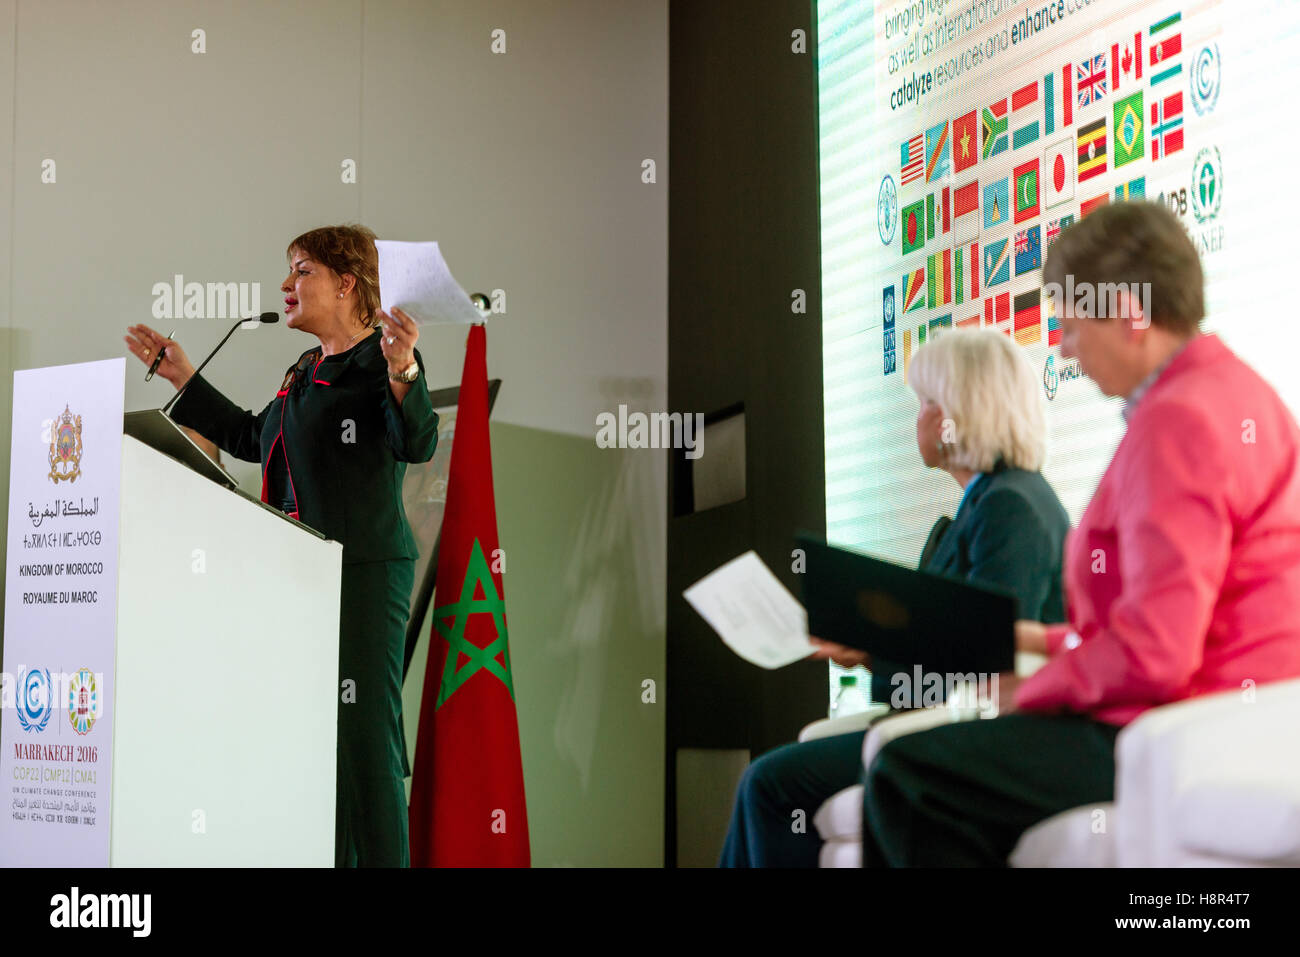 Marrakech, Morocco. 15th Nov, 2016. The Moroccan Minister of Environment Hakima El Haite speaks at the UN Climate Stock Photo